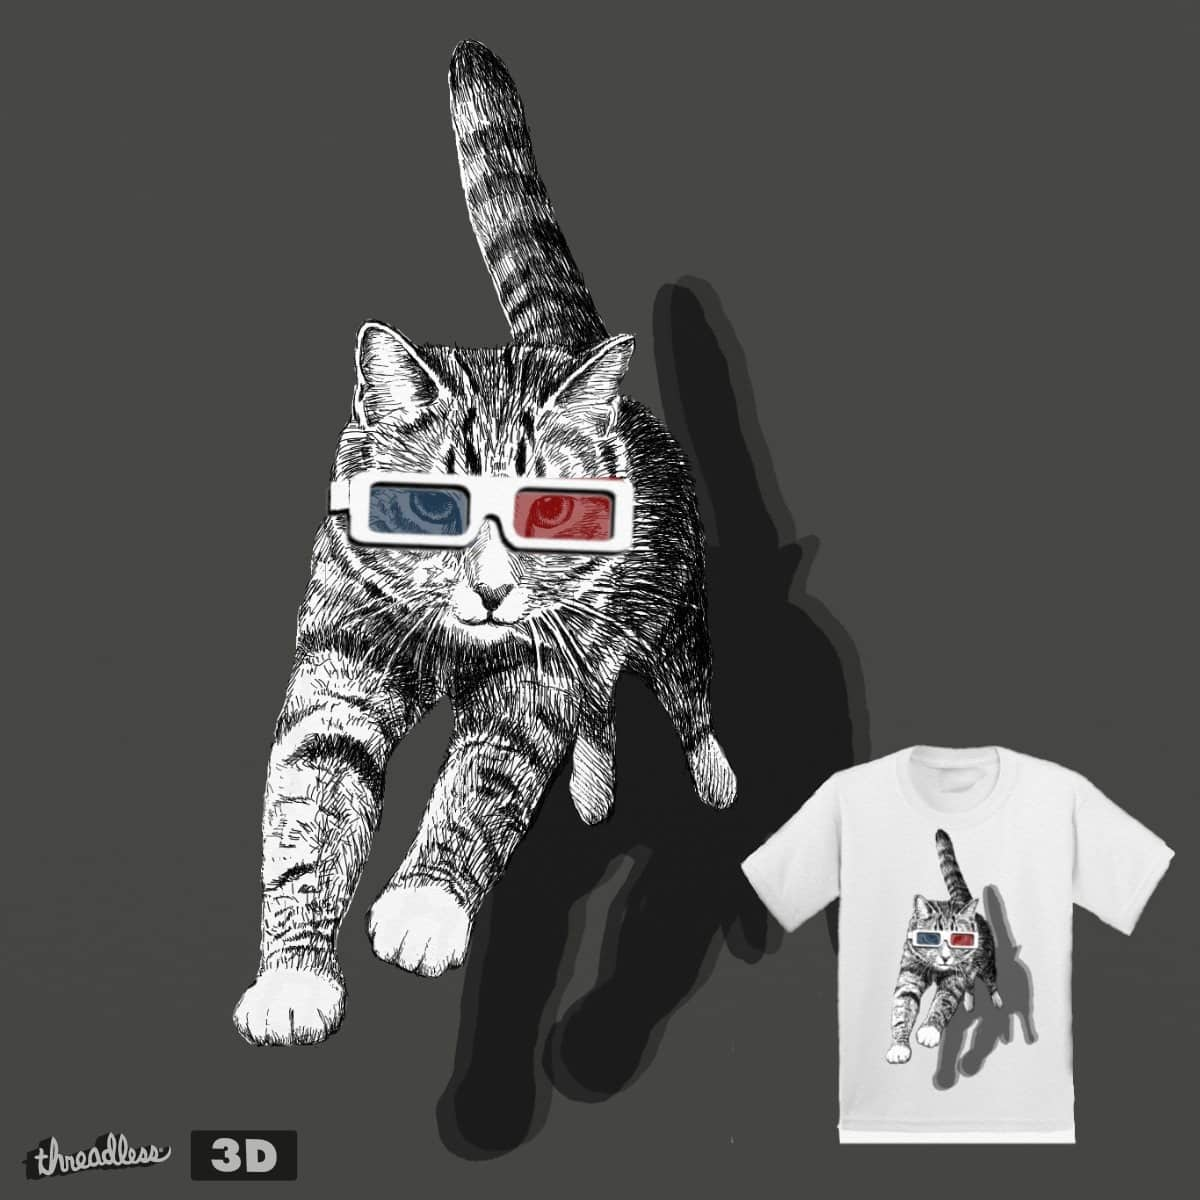 A Jump to 3D by est133 on Threadless